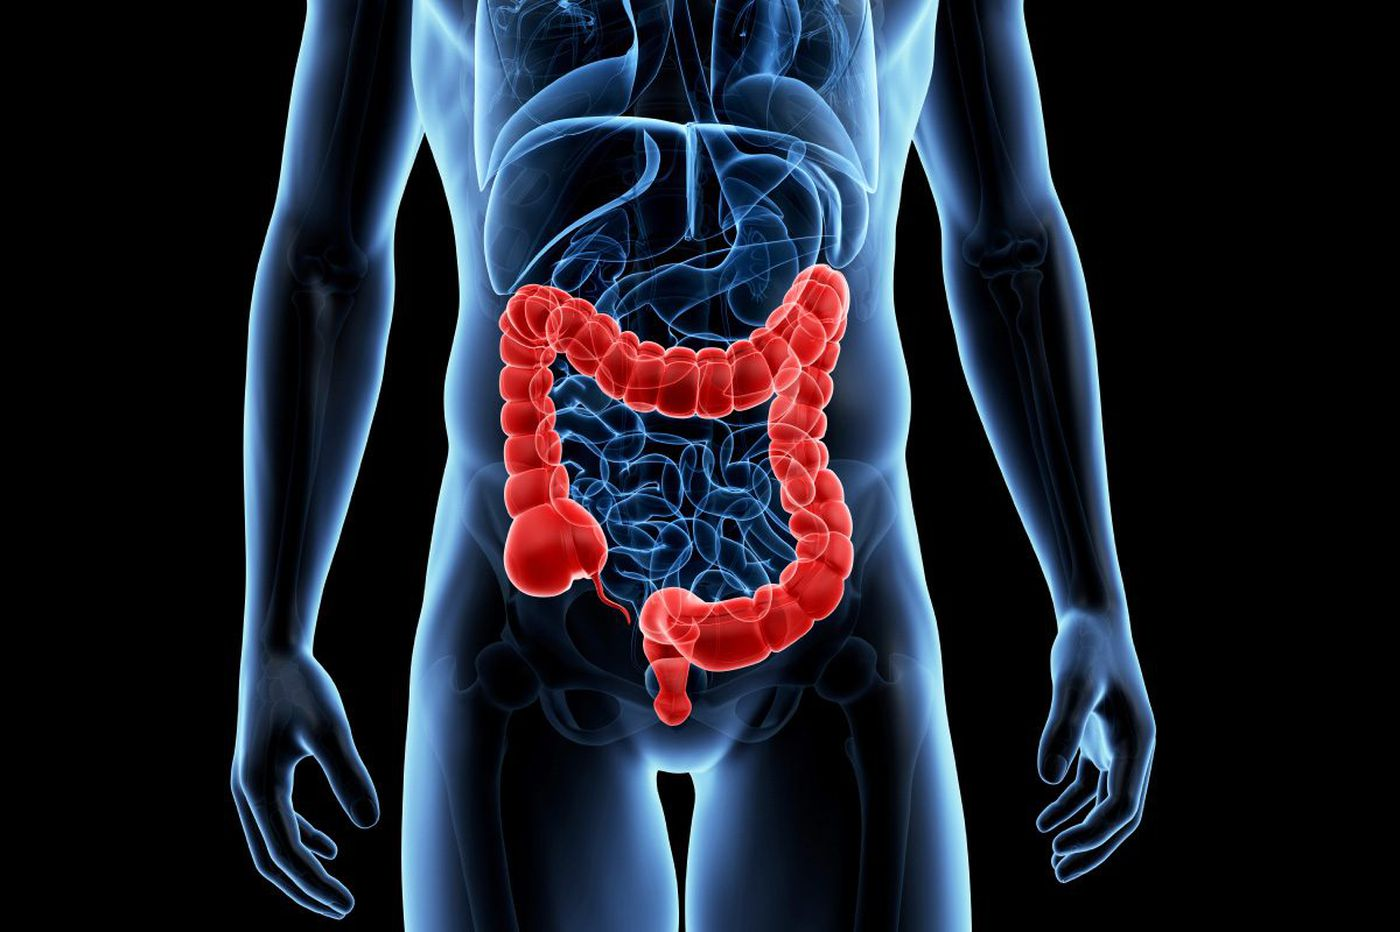 Colon cancer rates rising among younger white adults - and falling among blacks